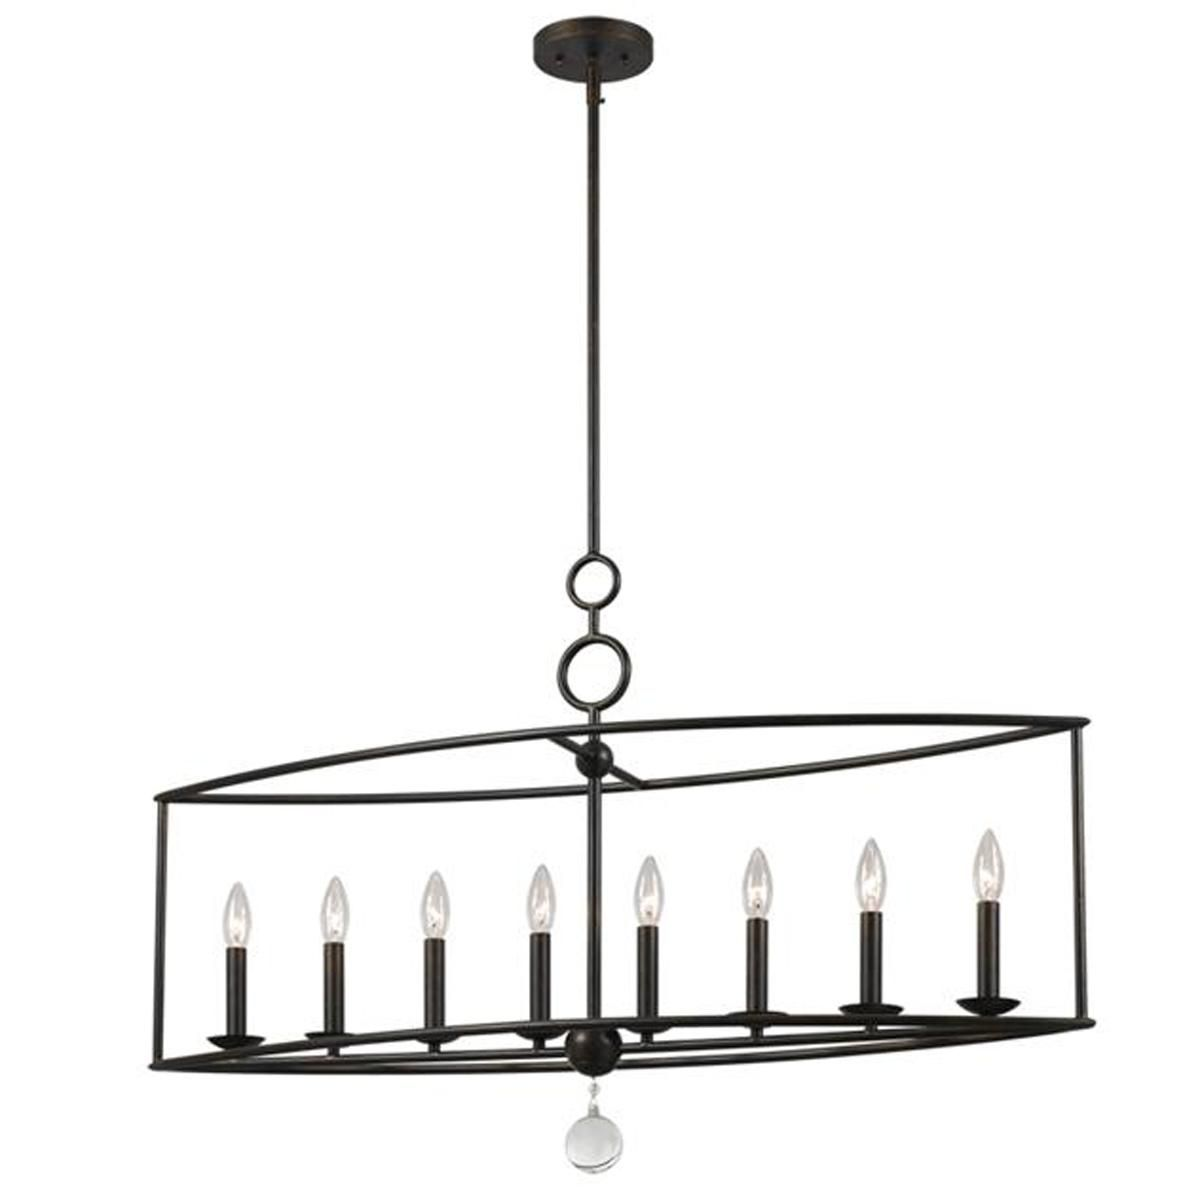 Modern cage wrought iron linear chandelier linear chandelier modern cage wrought iron linear chandelier arubaitofo Images